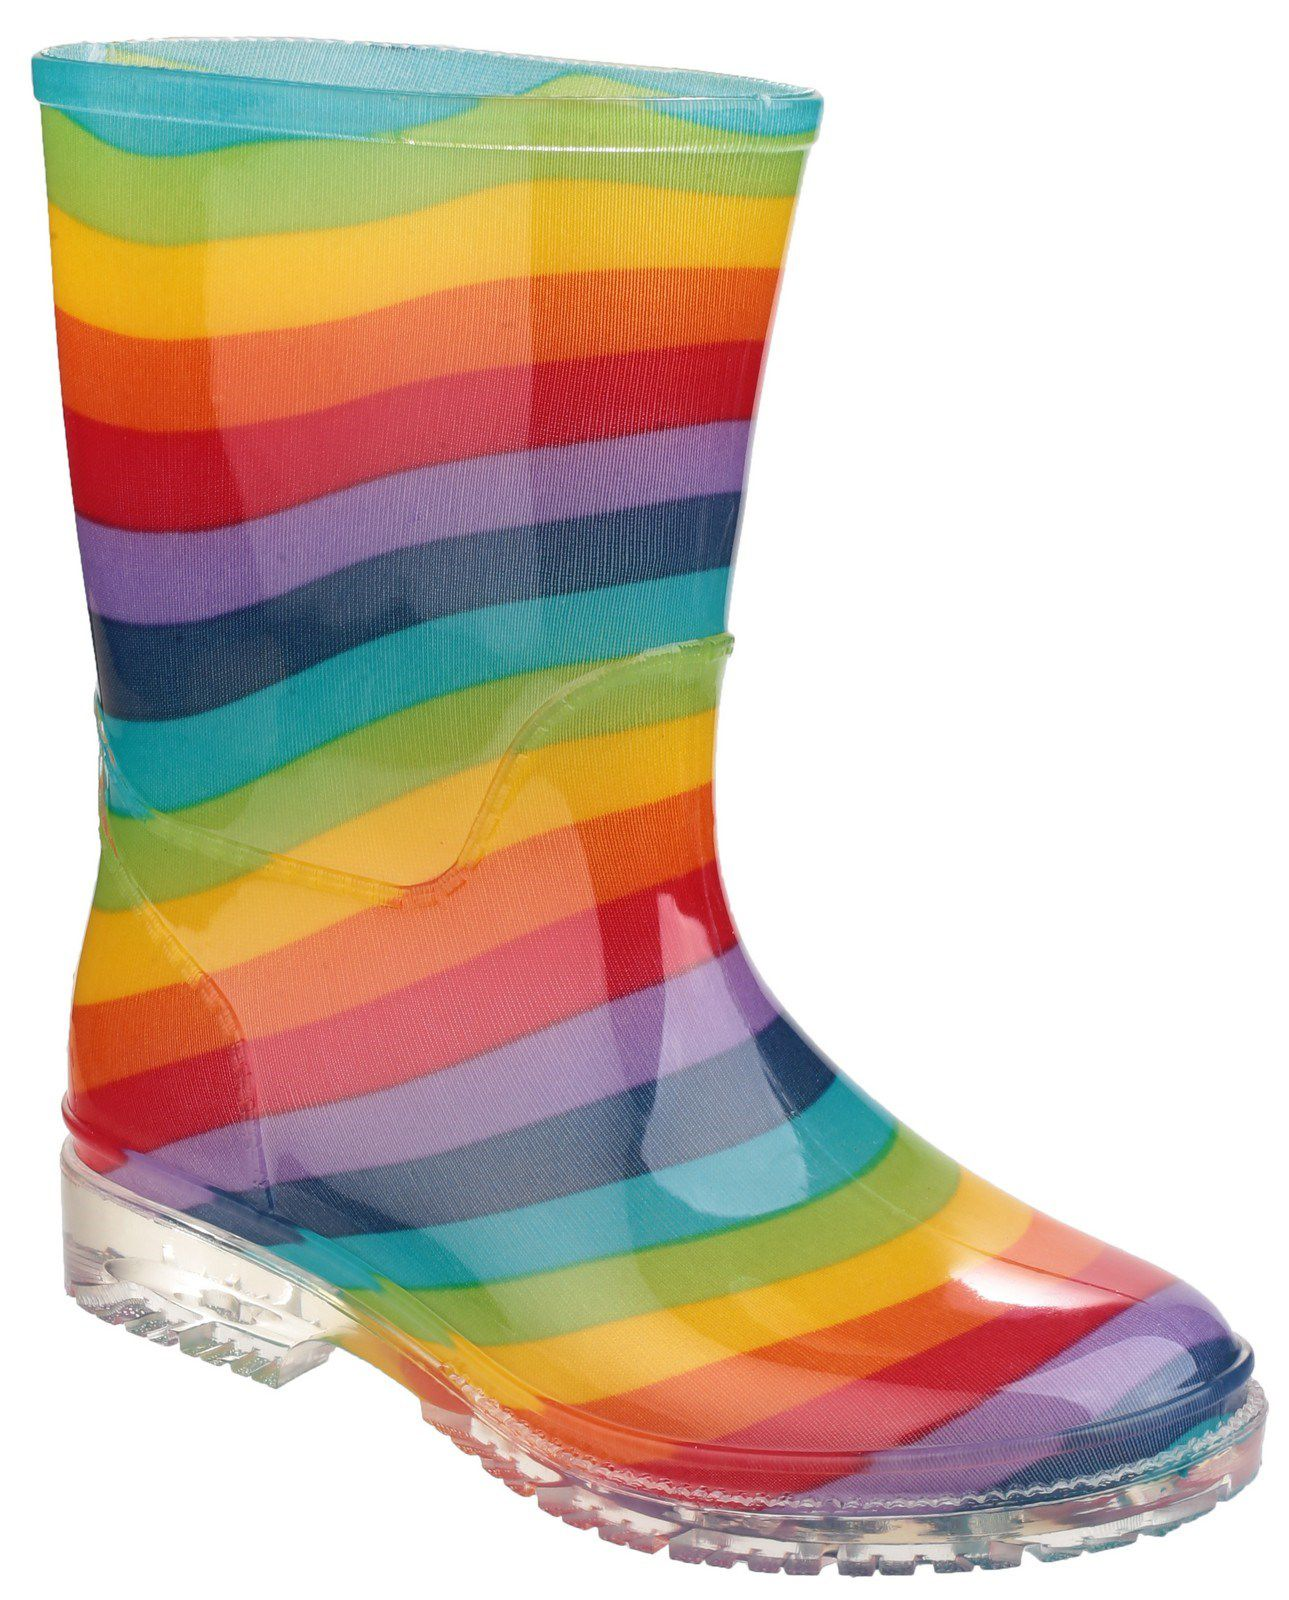 Cotswold Cotswold Kids Patterned PVC Wellies, Multi-Coloured